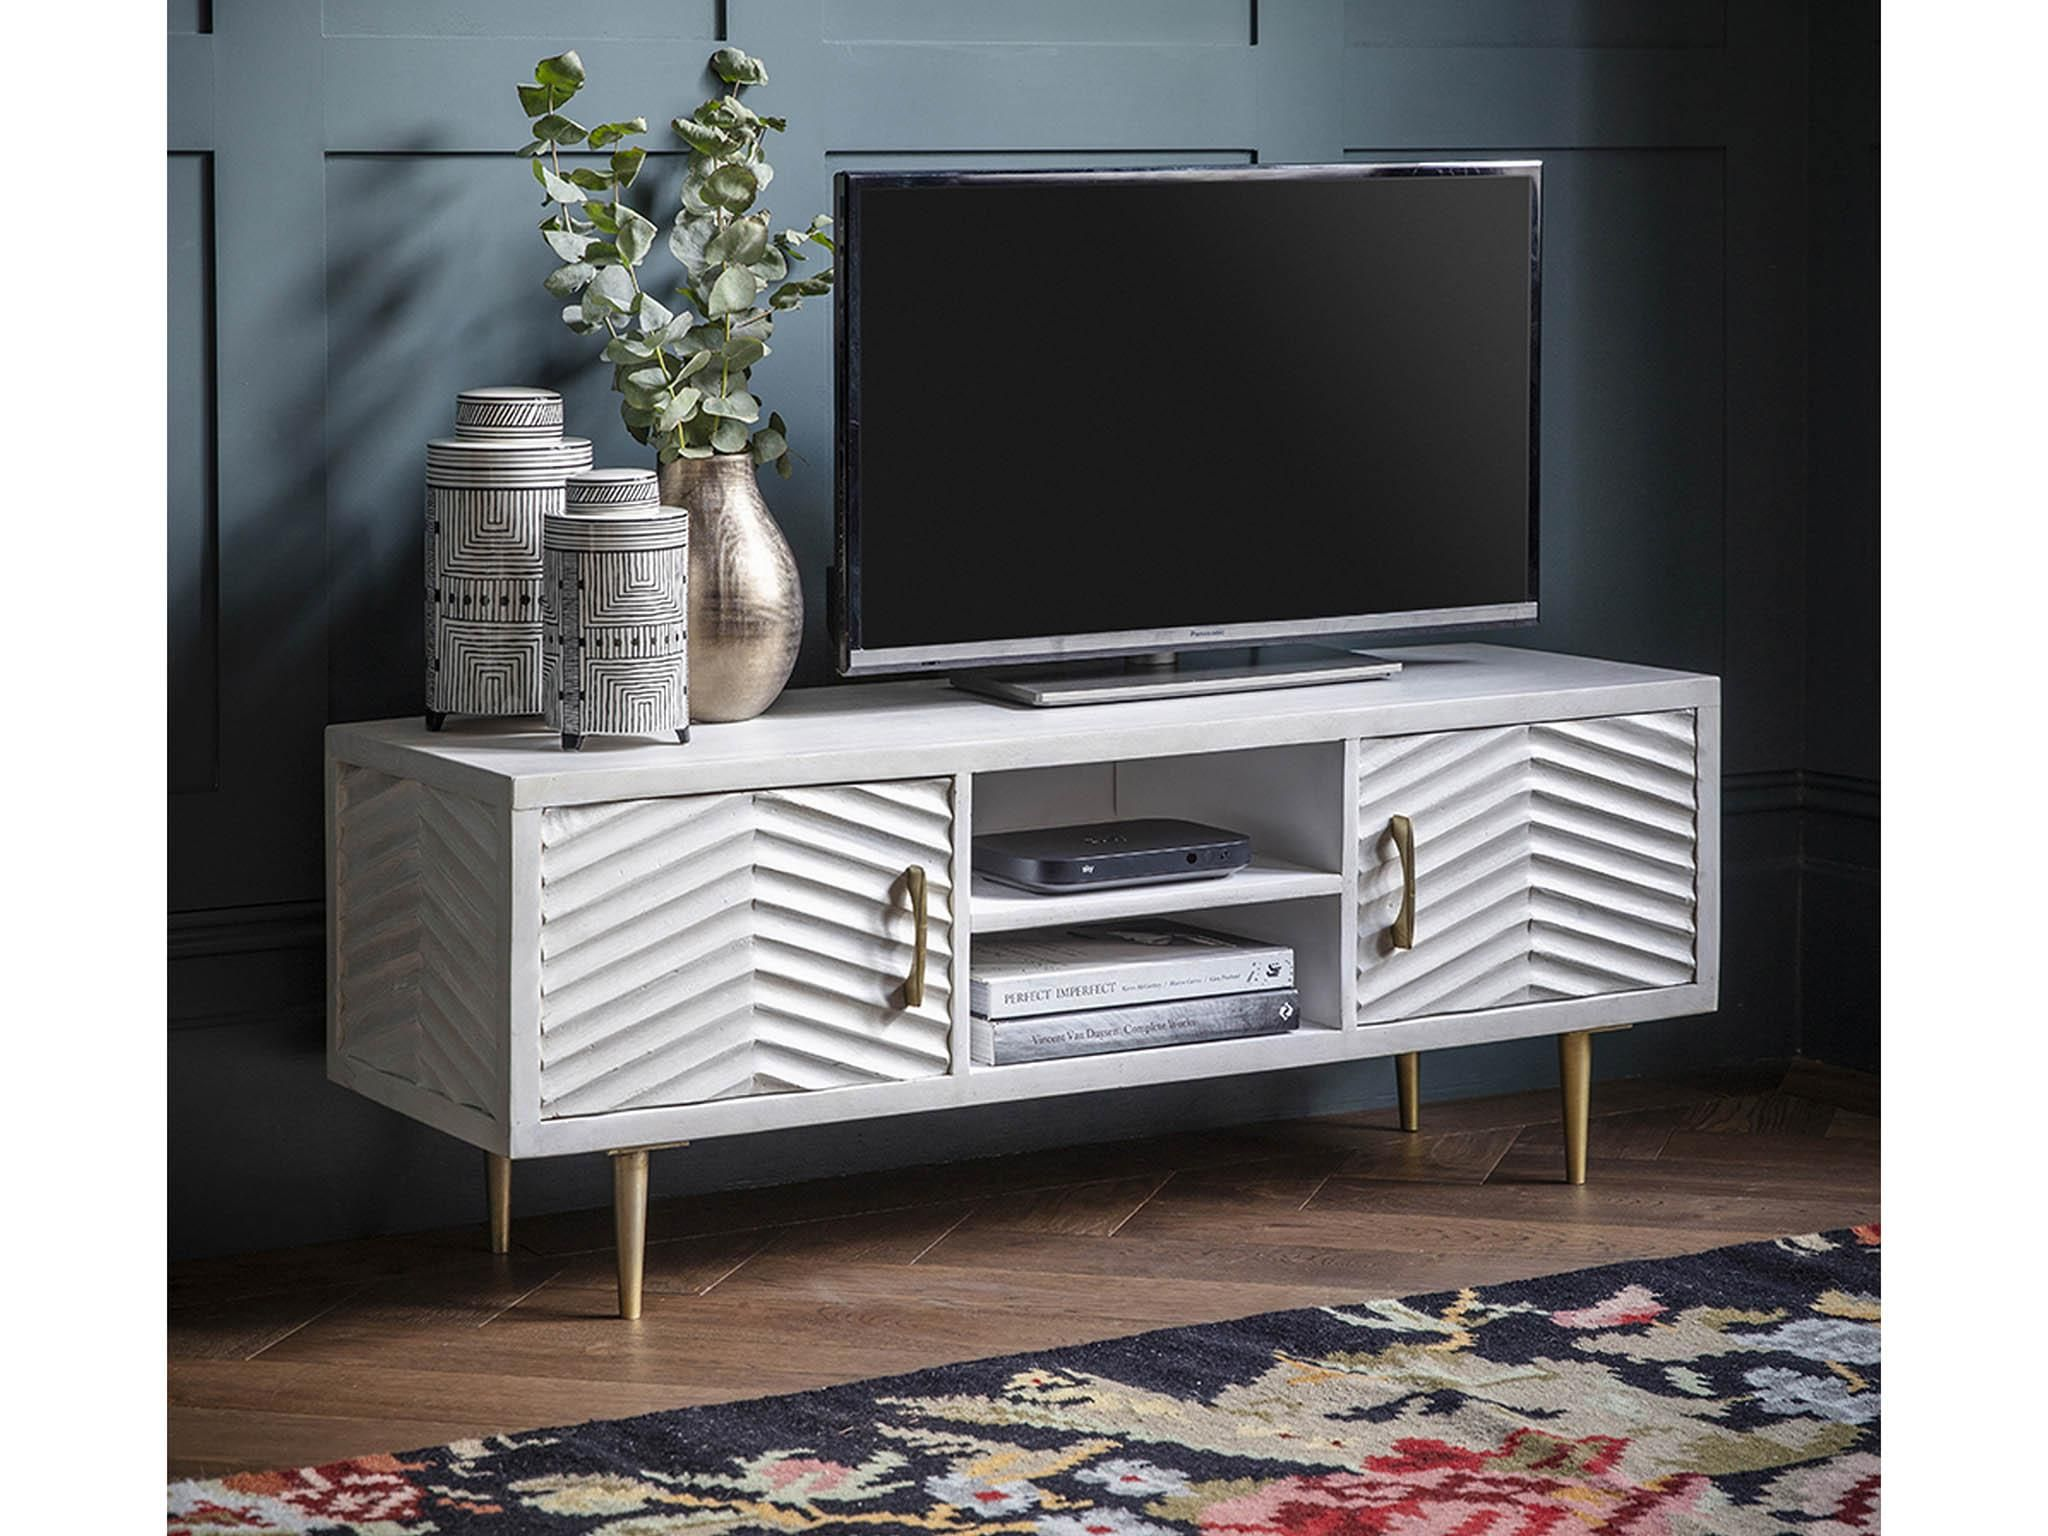 Awesome Walnut Tv Stands For Flat Screens In 2020